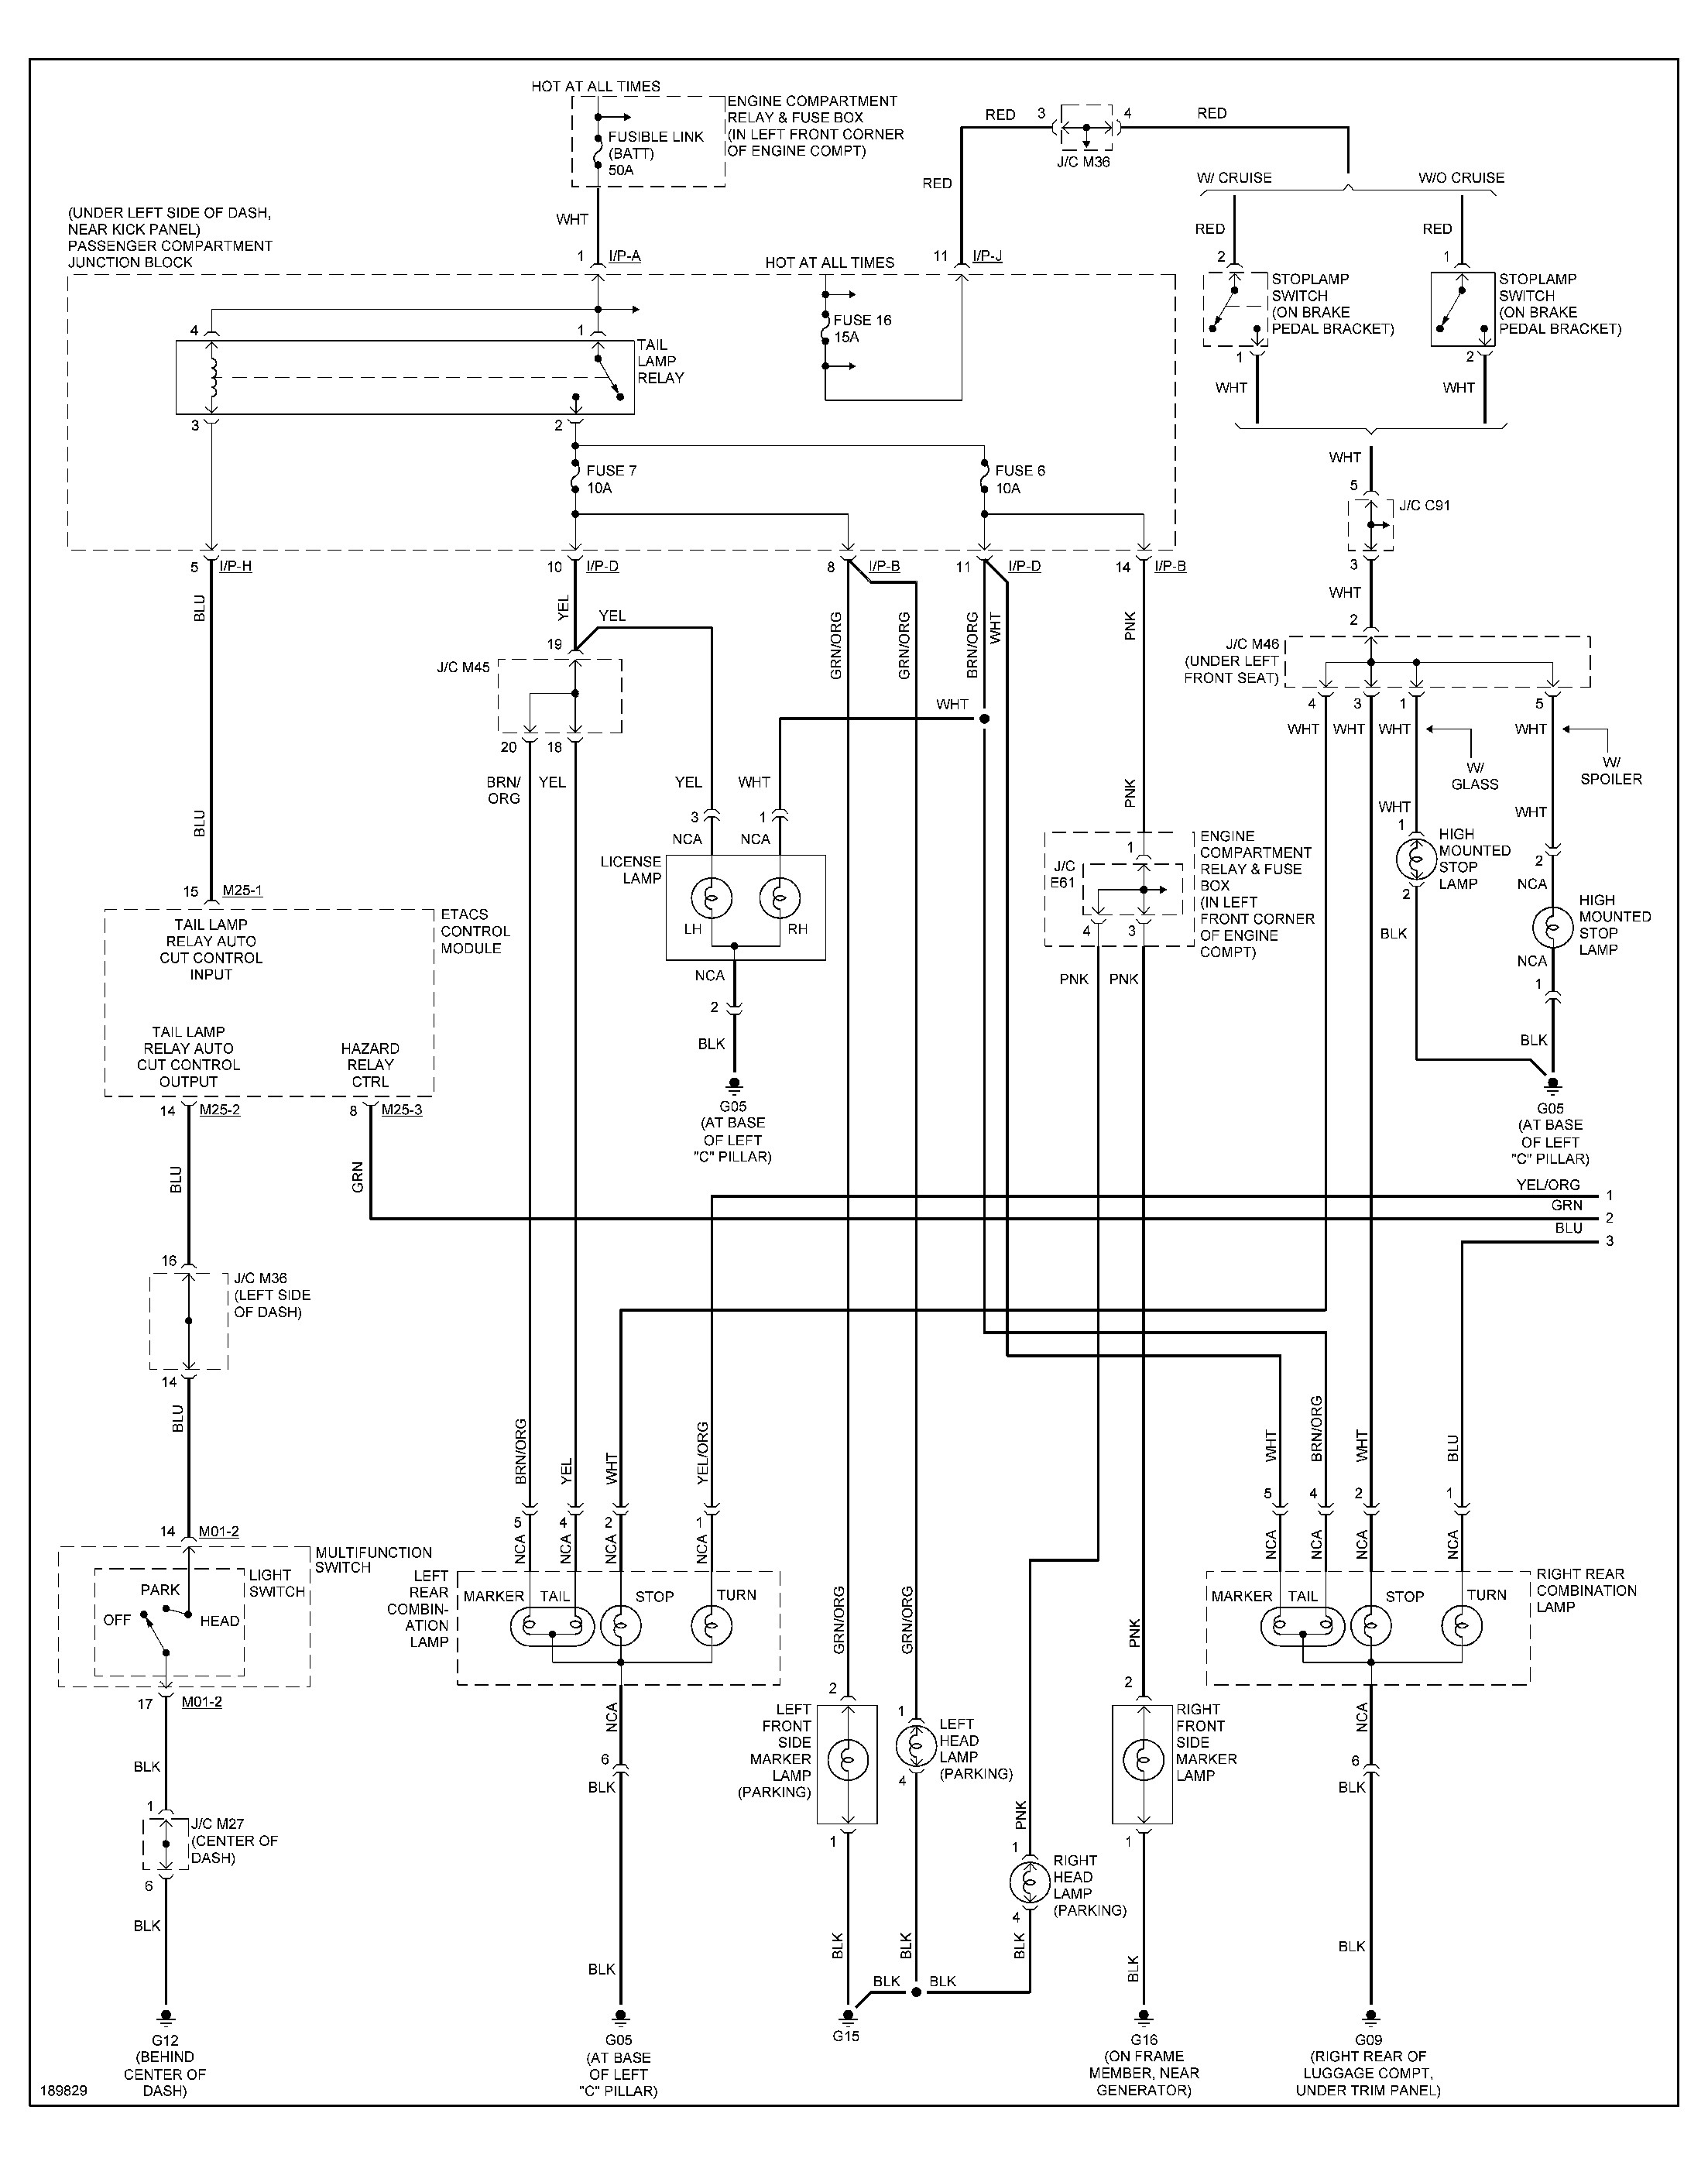 Dell Precision 5520 Manual Wiring Diagram